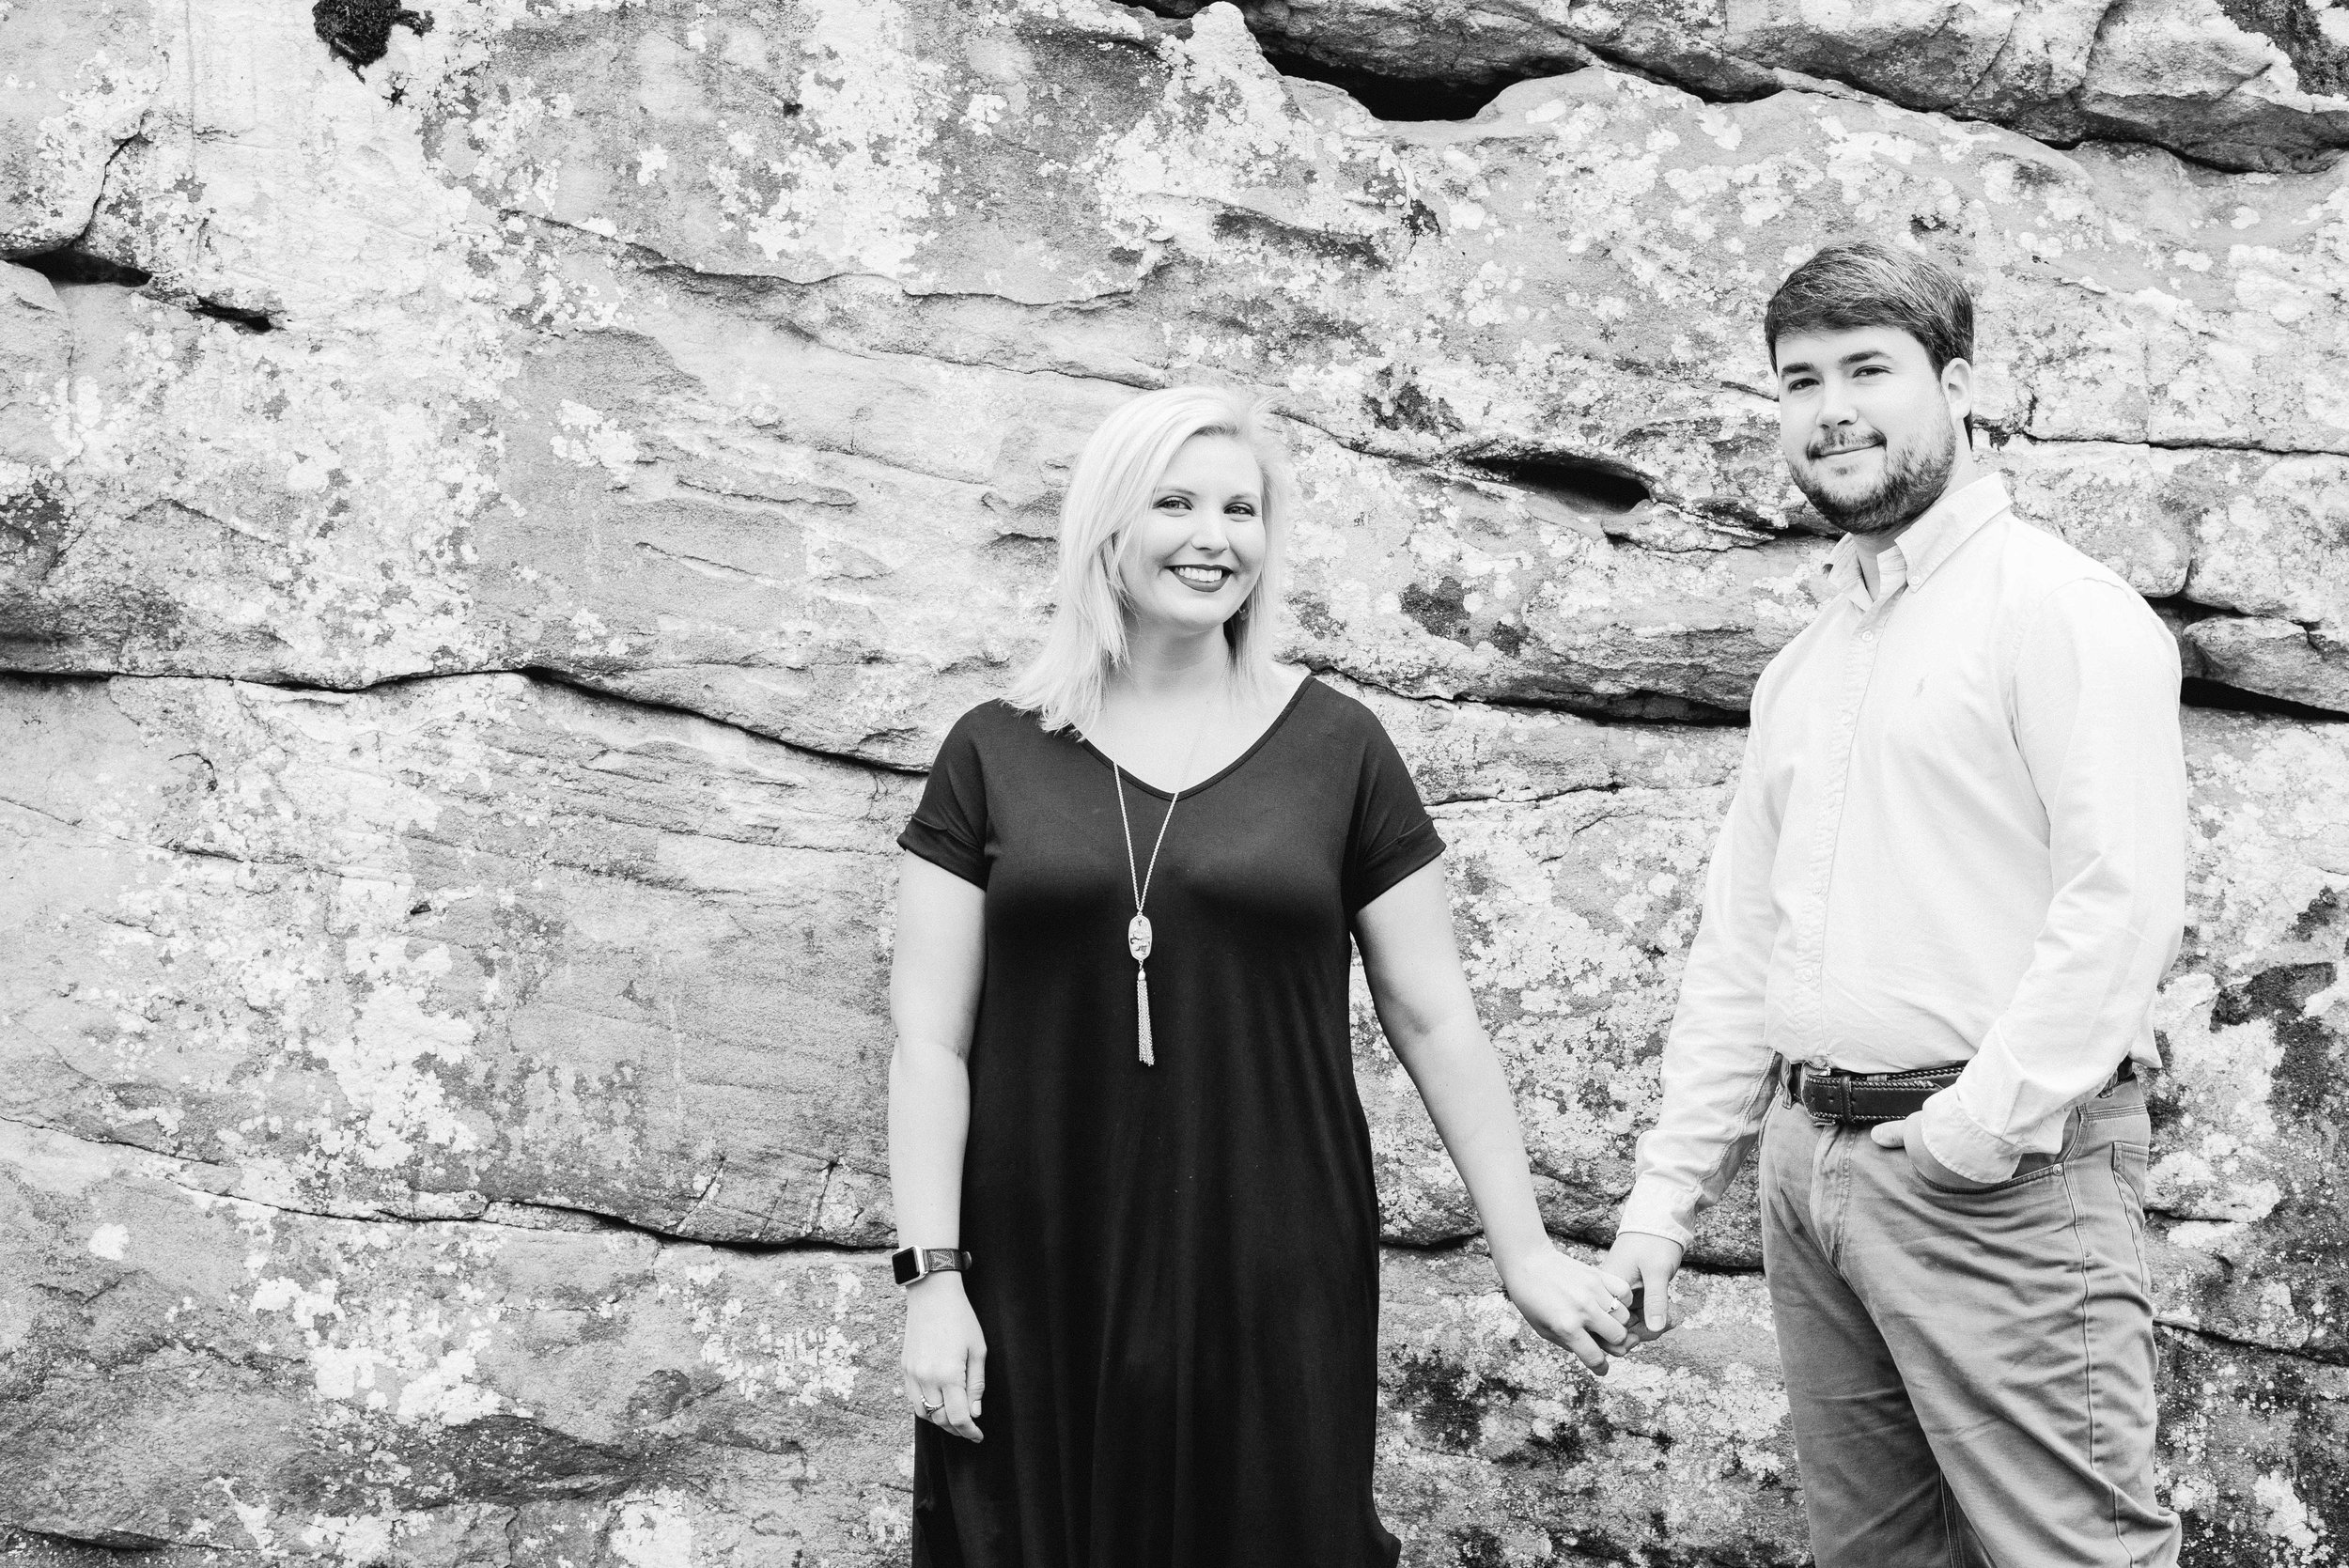 Birmingham Alabama Wedding Photographer Deborah Michelle Moss Rock Preserve